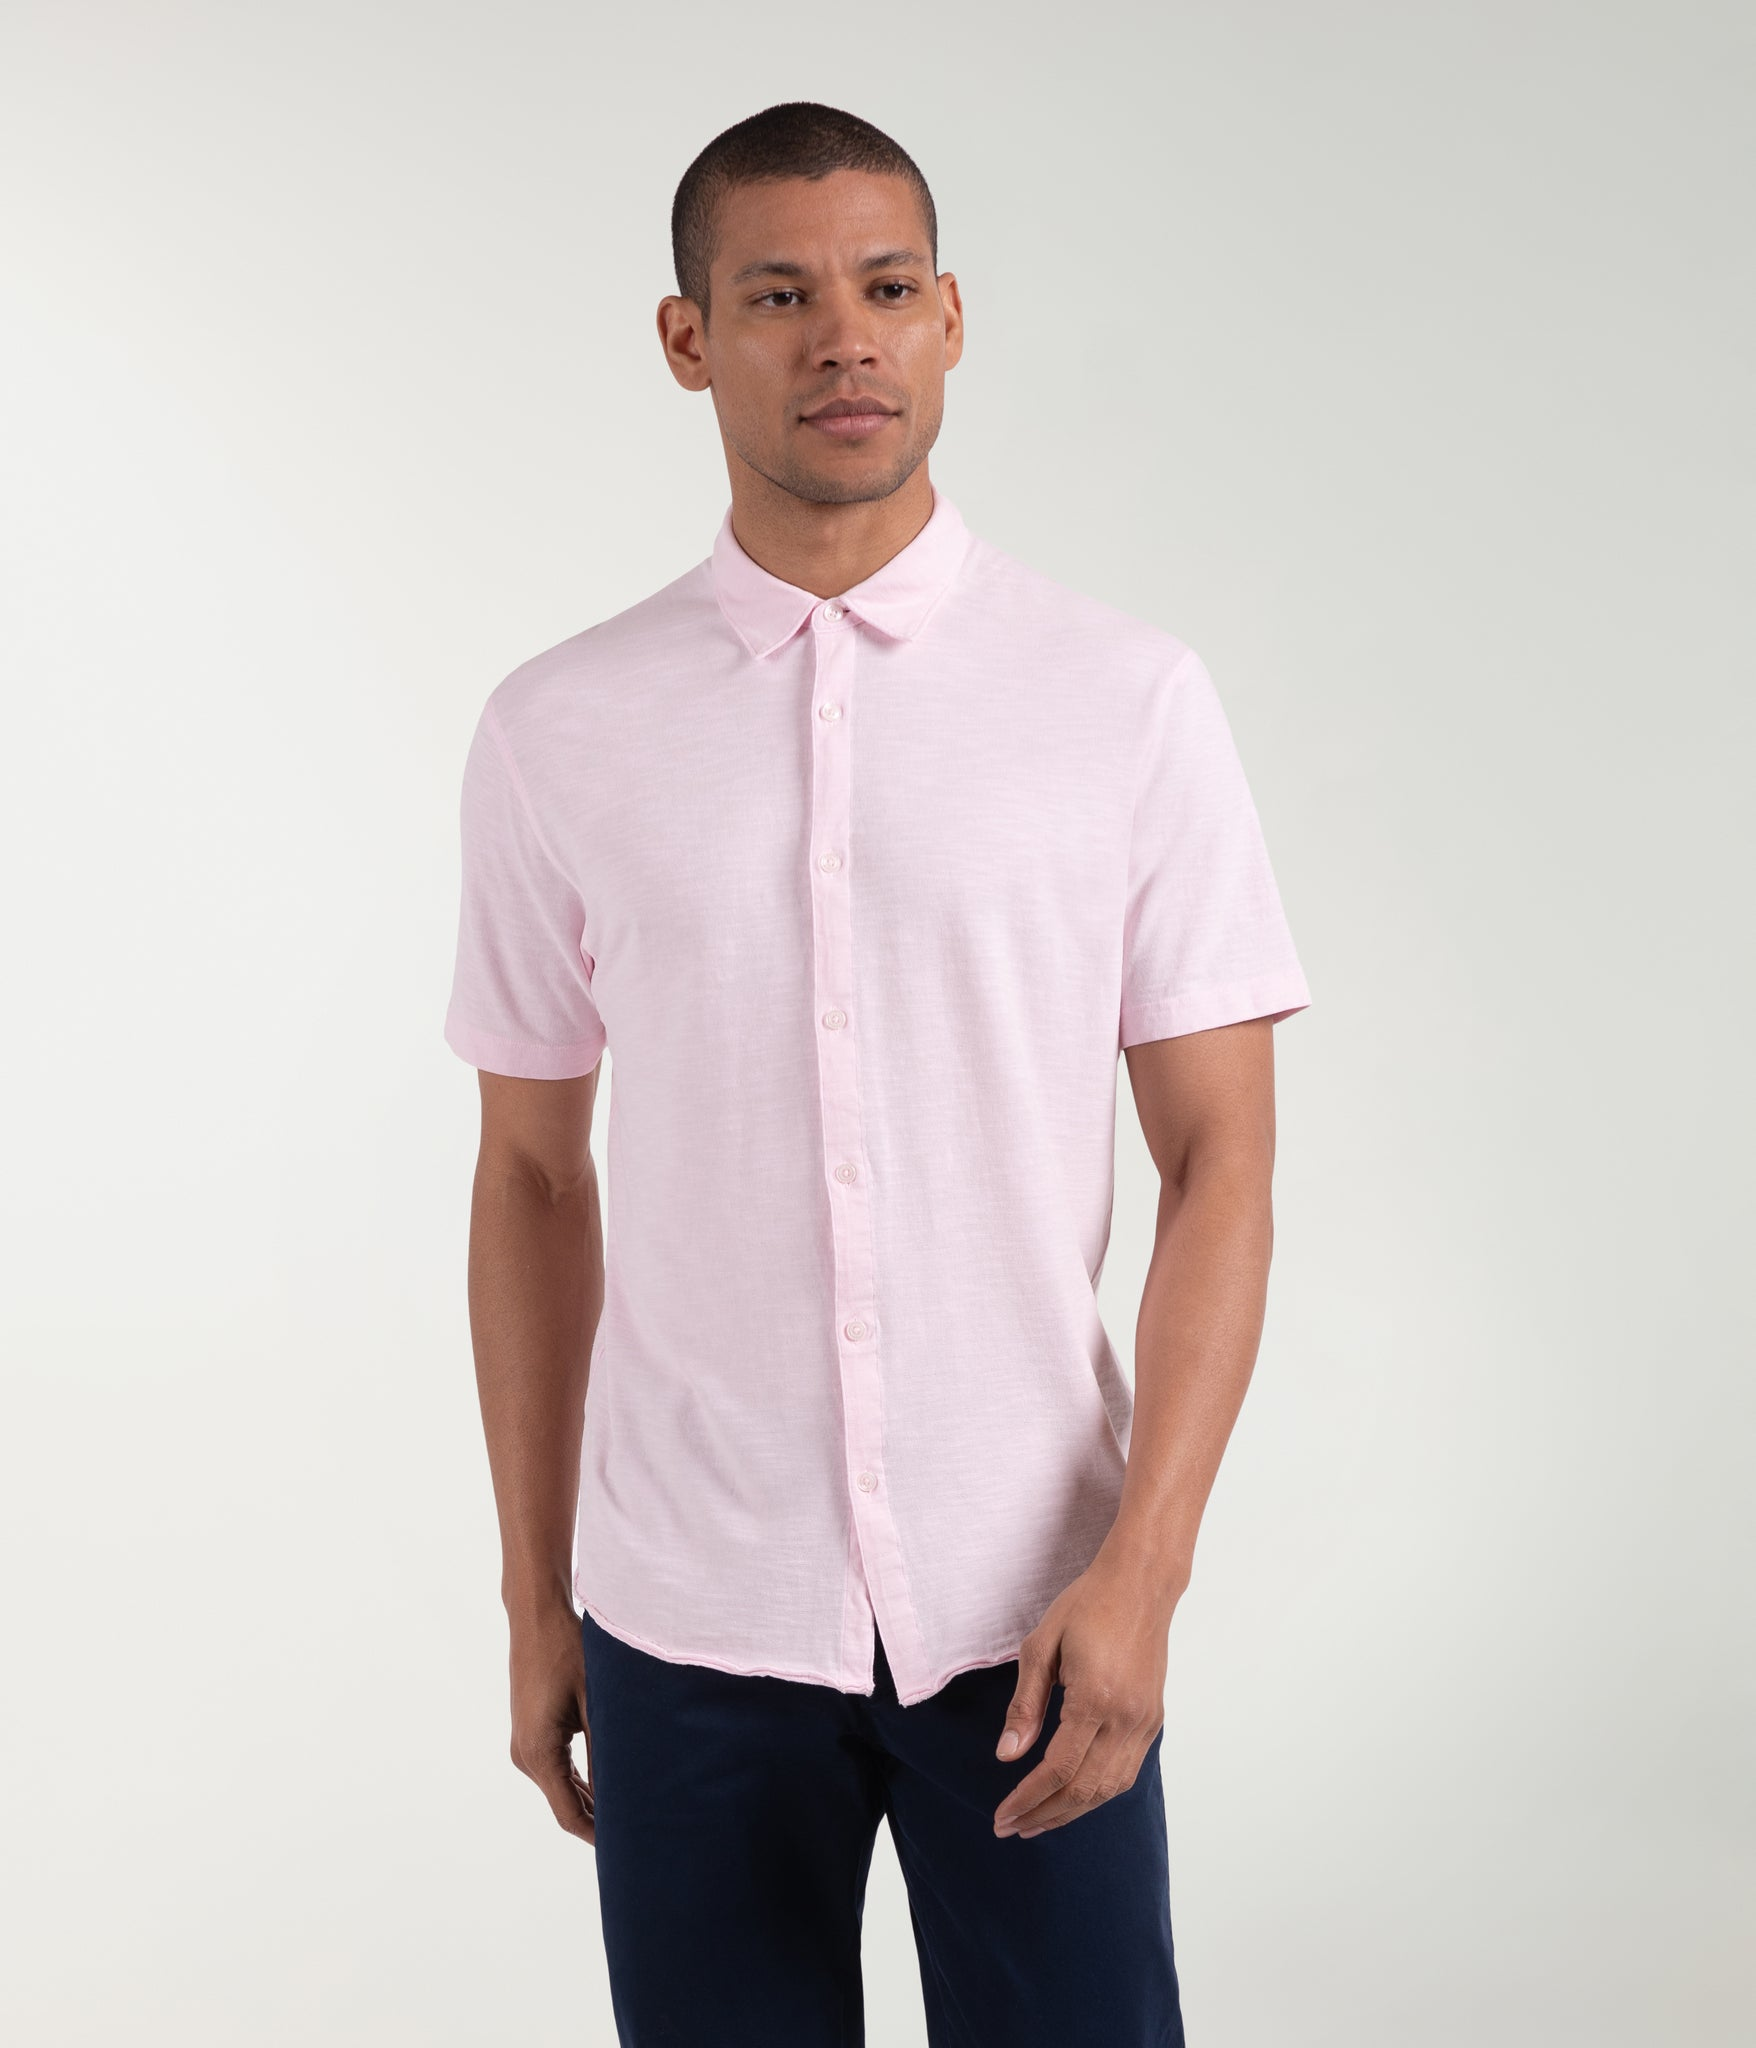 Soft Slub Jersey On-Point Shirt - Cherry Blossom